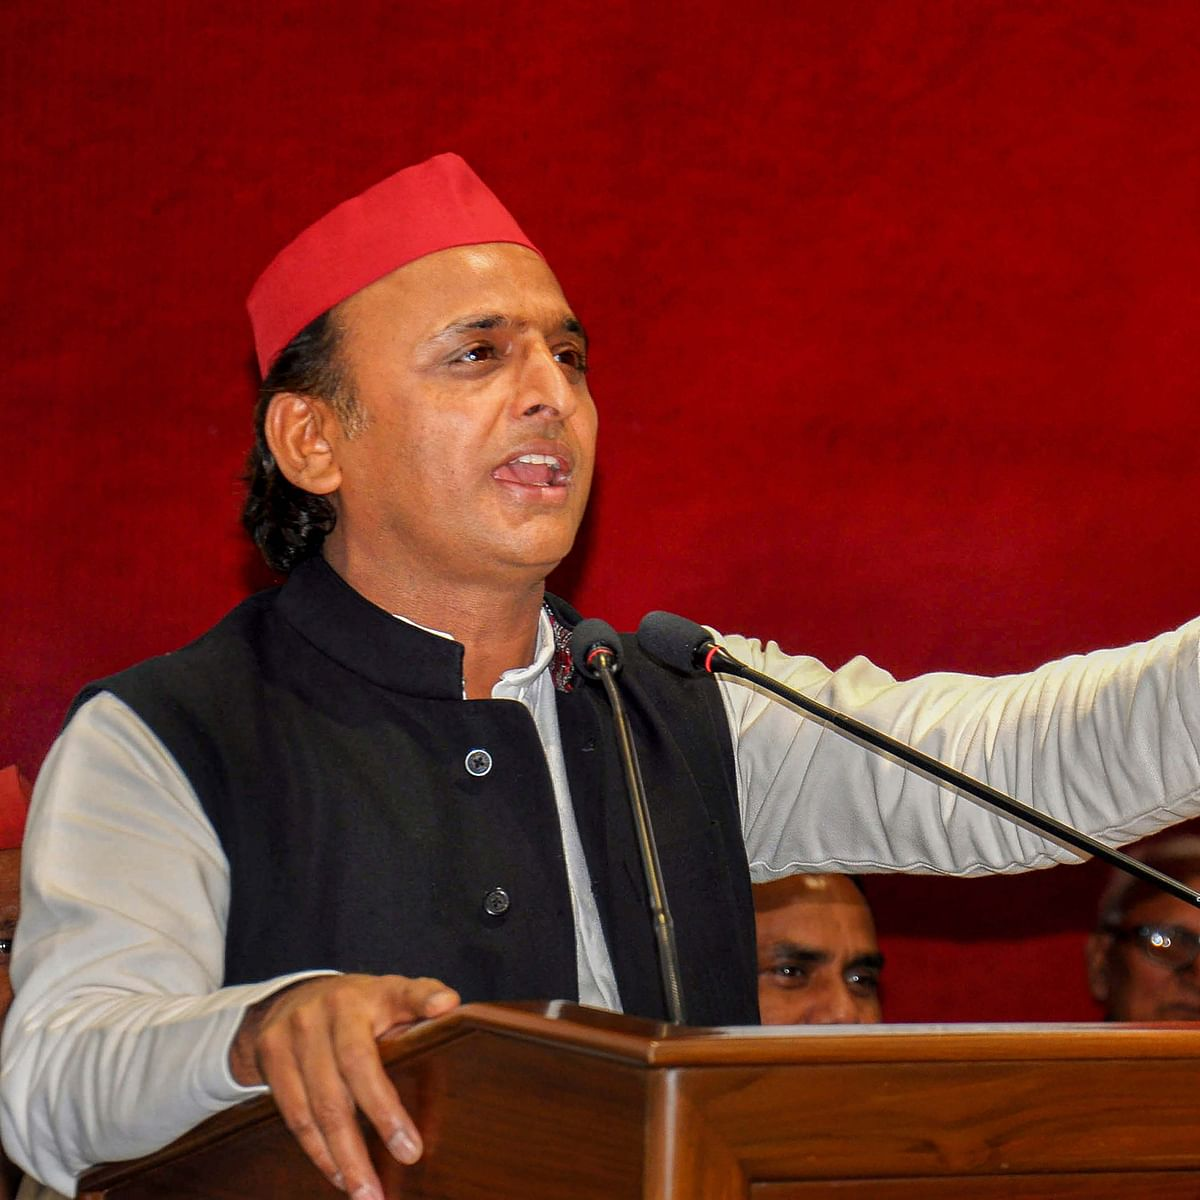 It's all in the stars: SP to win 350 out of 403 seats in UP, astrologer tells Akhilesh Yadav